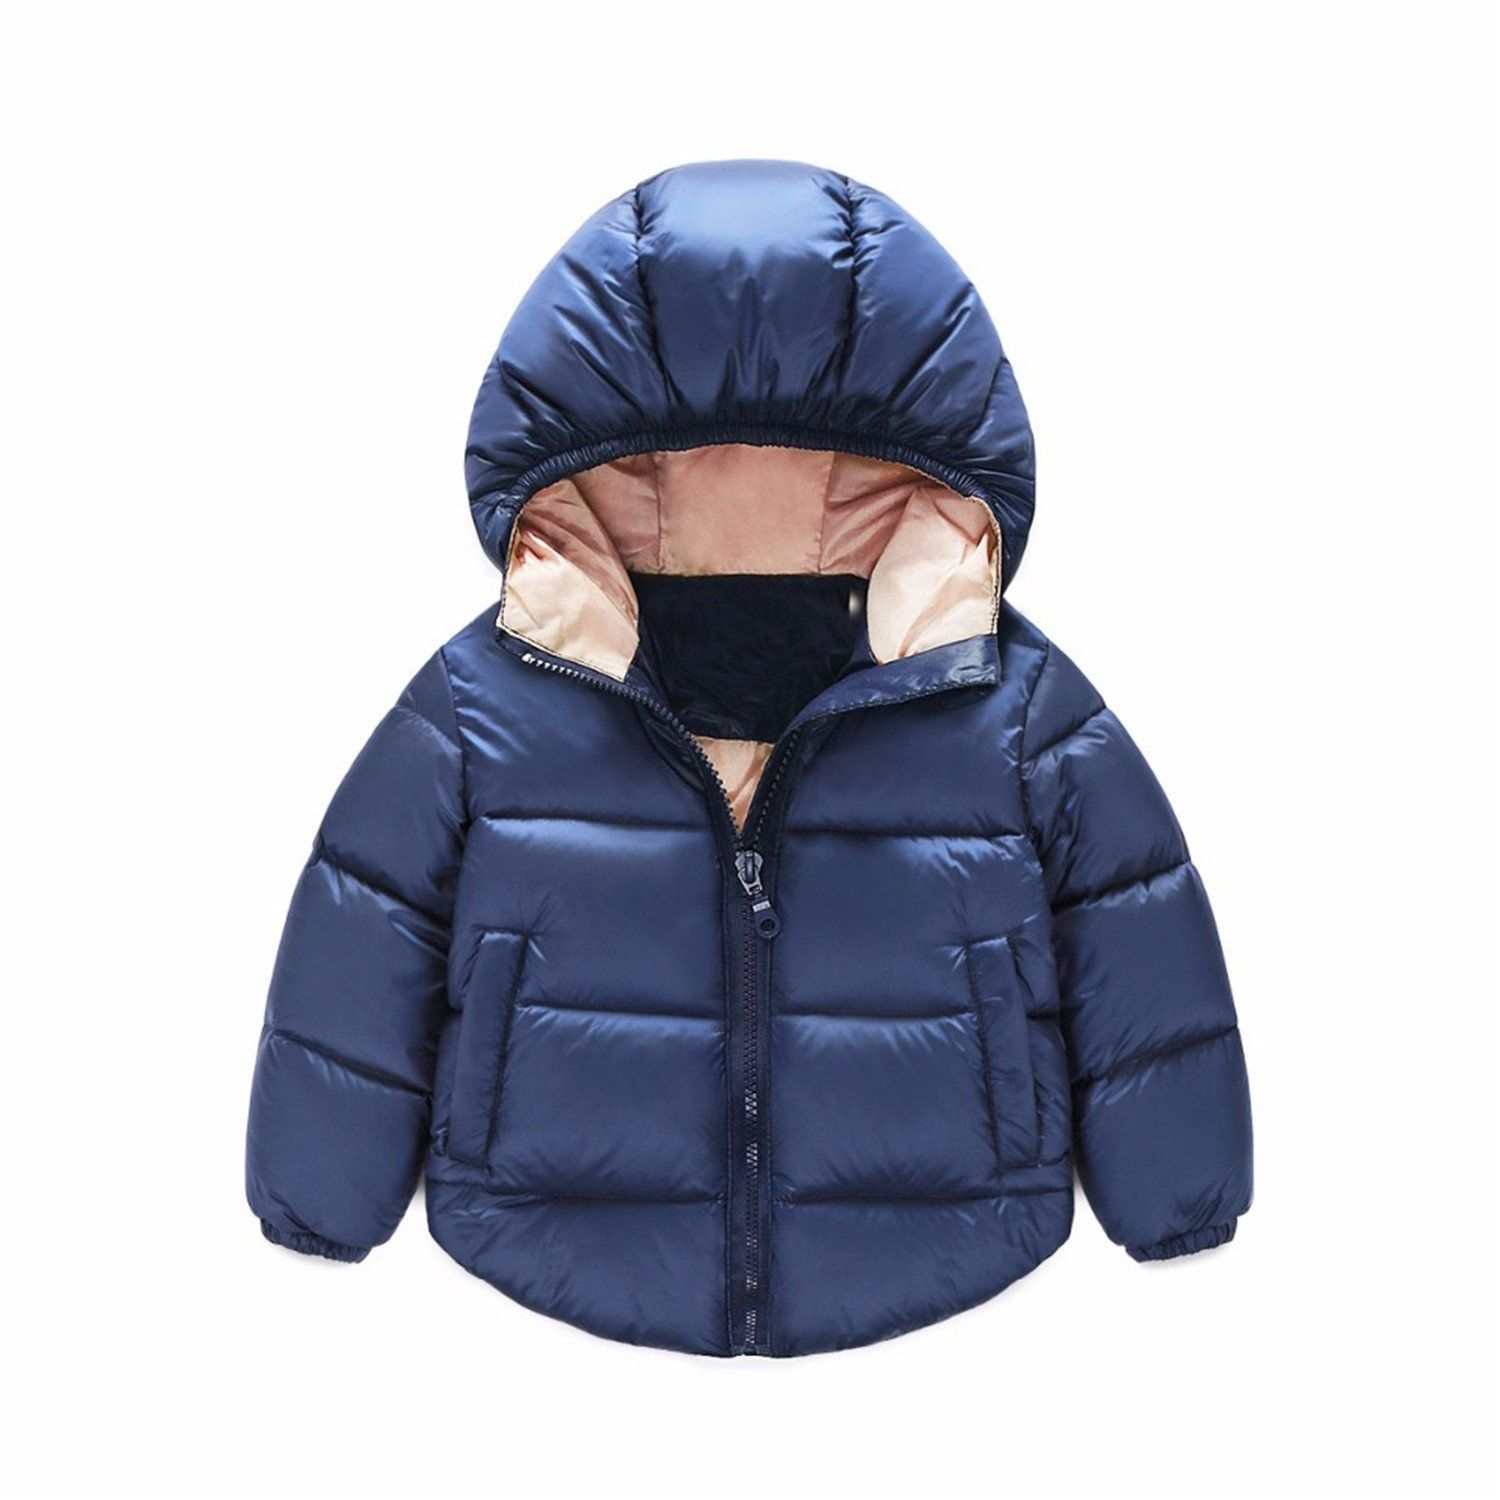 eacb8d674 Anthony Moore Autumn Winter Baby Warm Snowsuit Boys Girls Coat ...